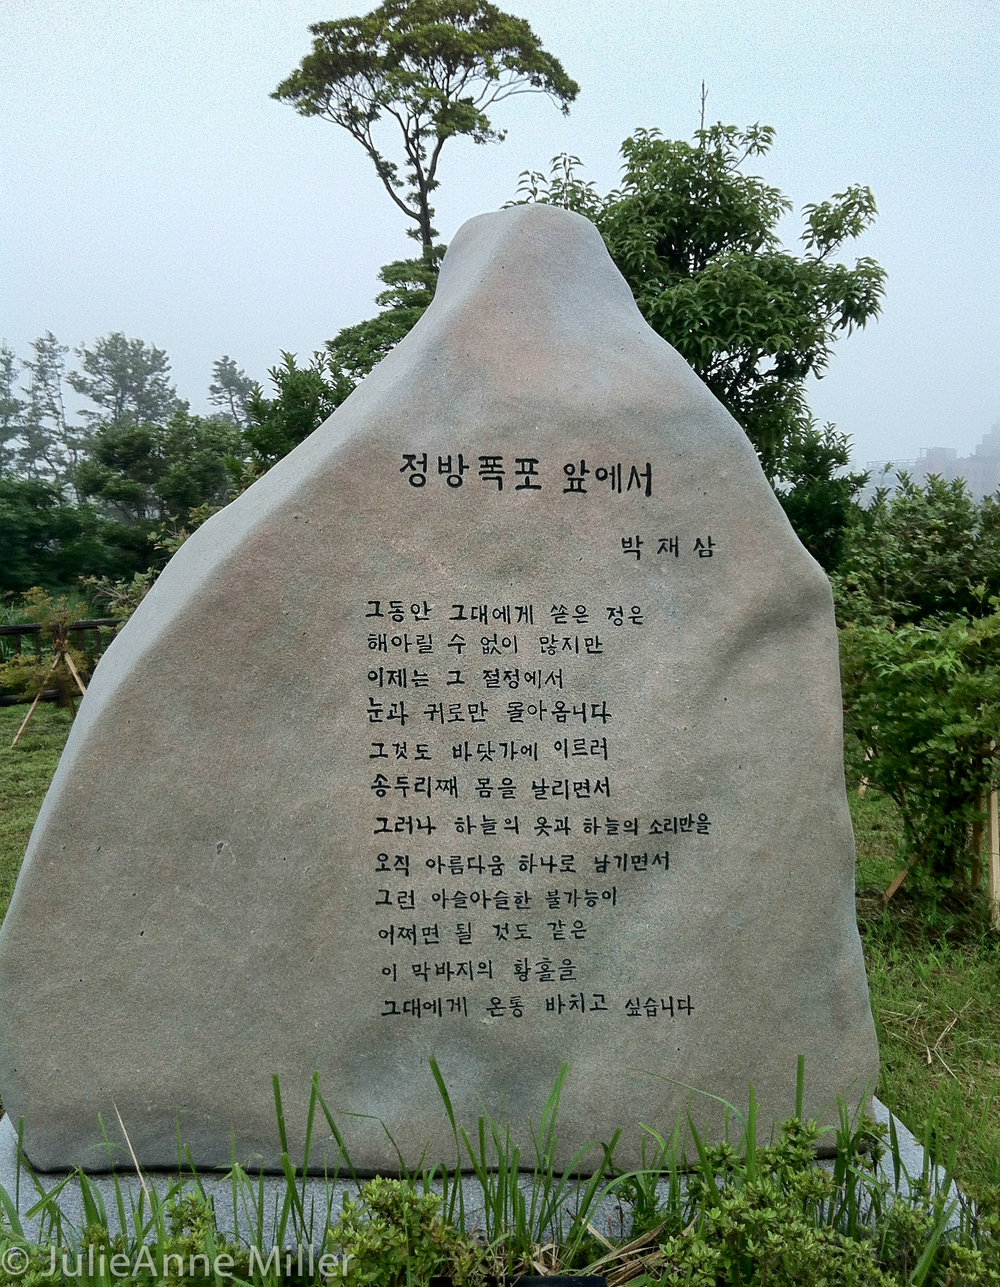 Chilsimni Poetry Park, 칠십리 공원